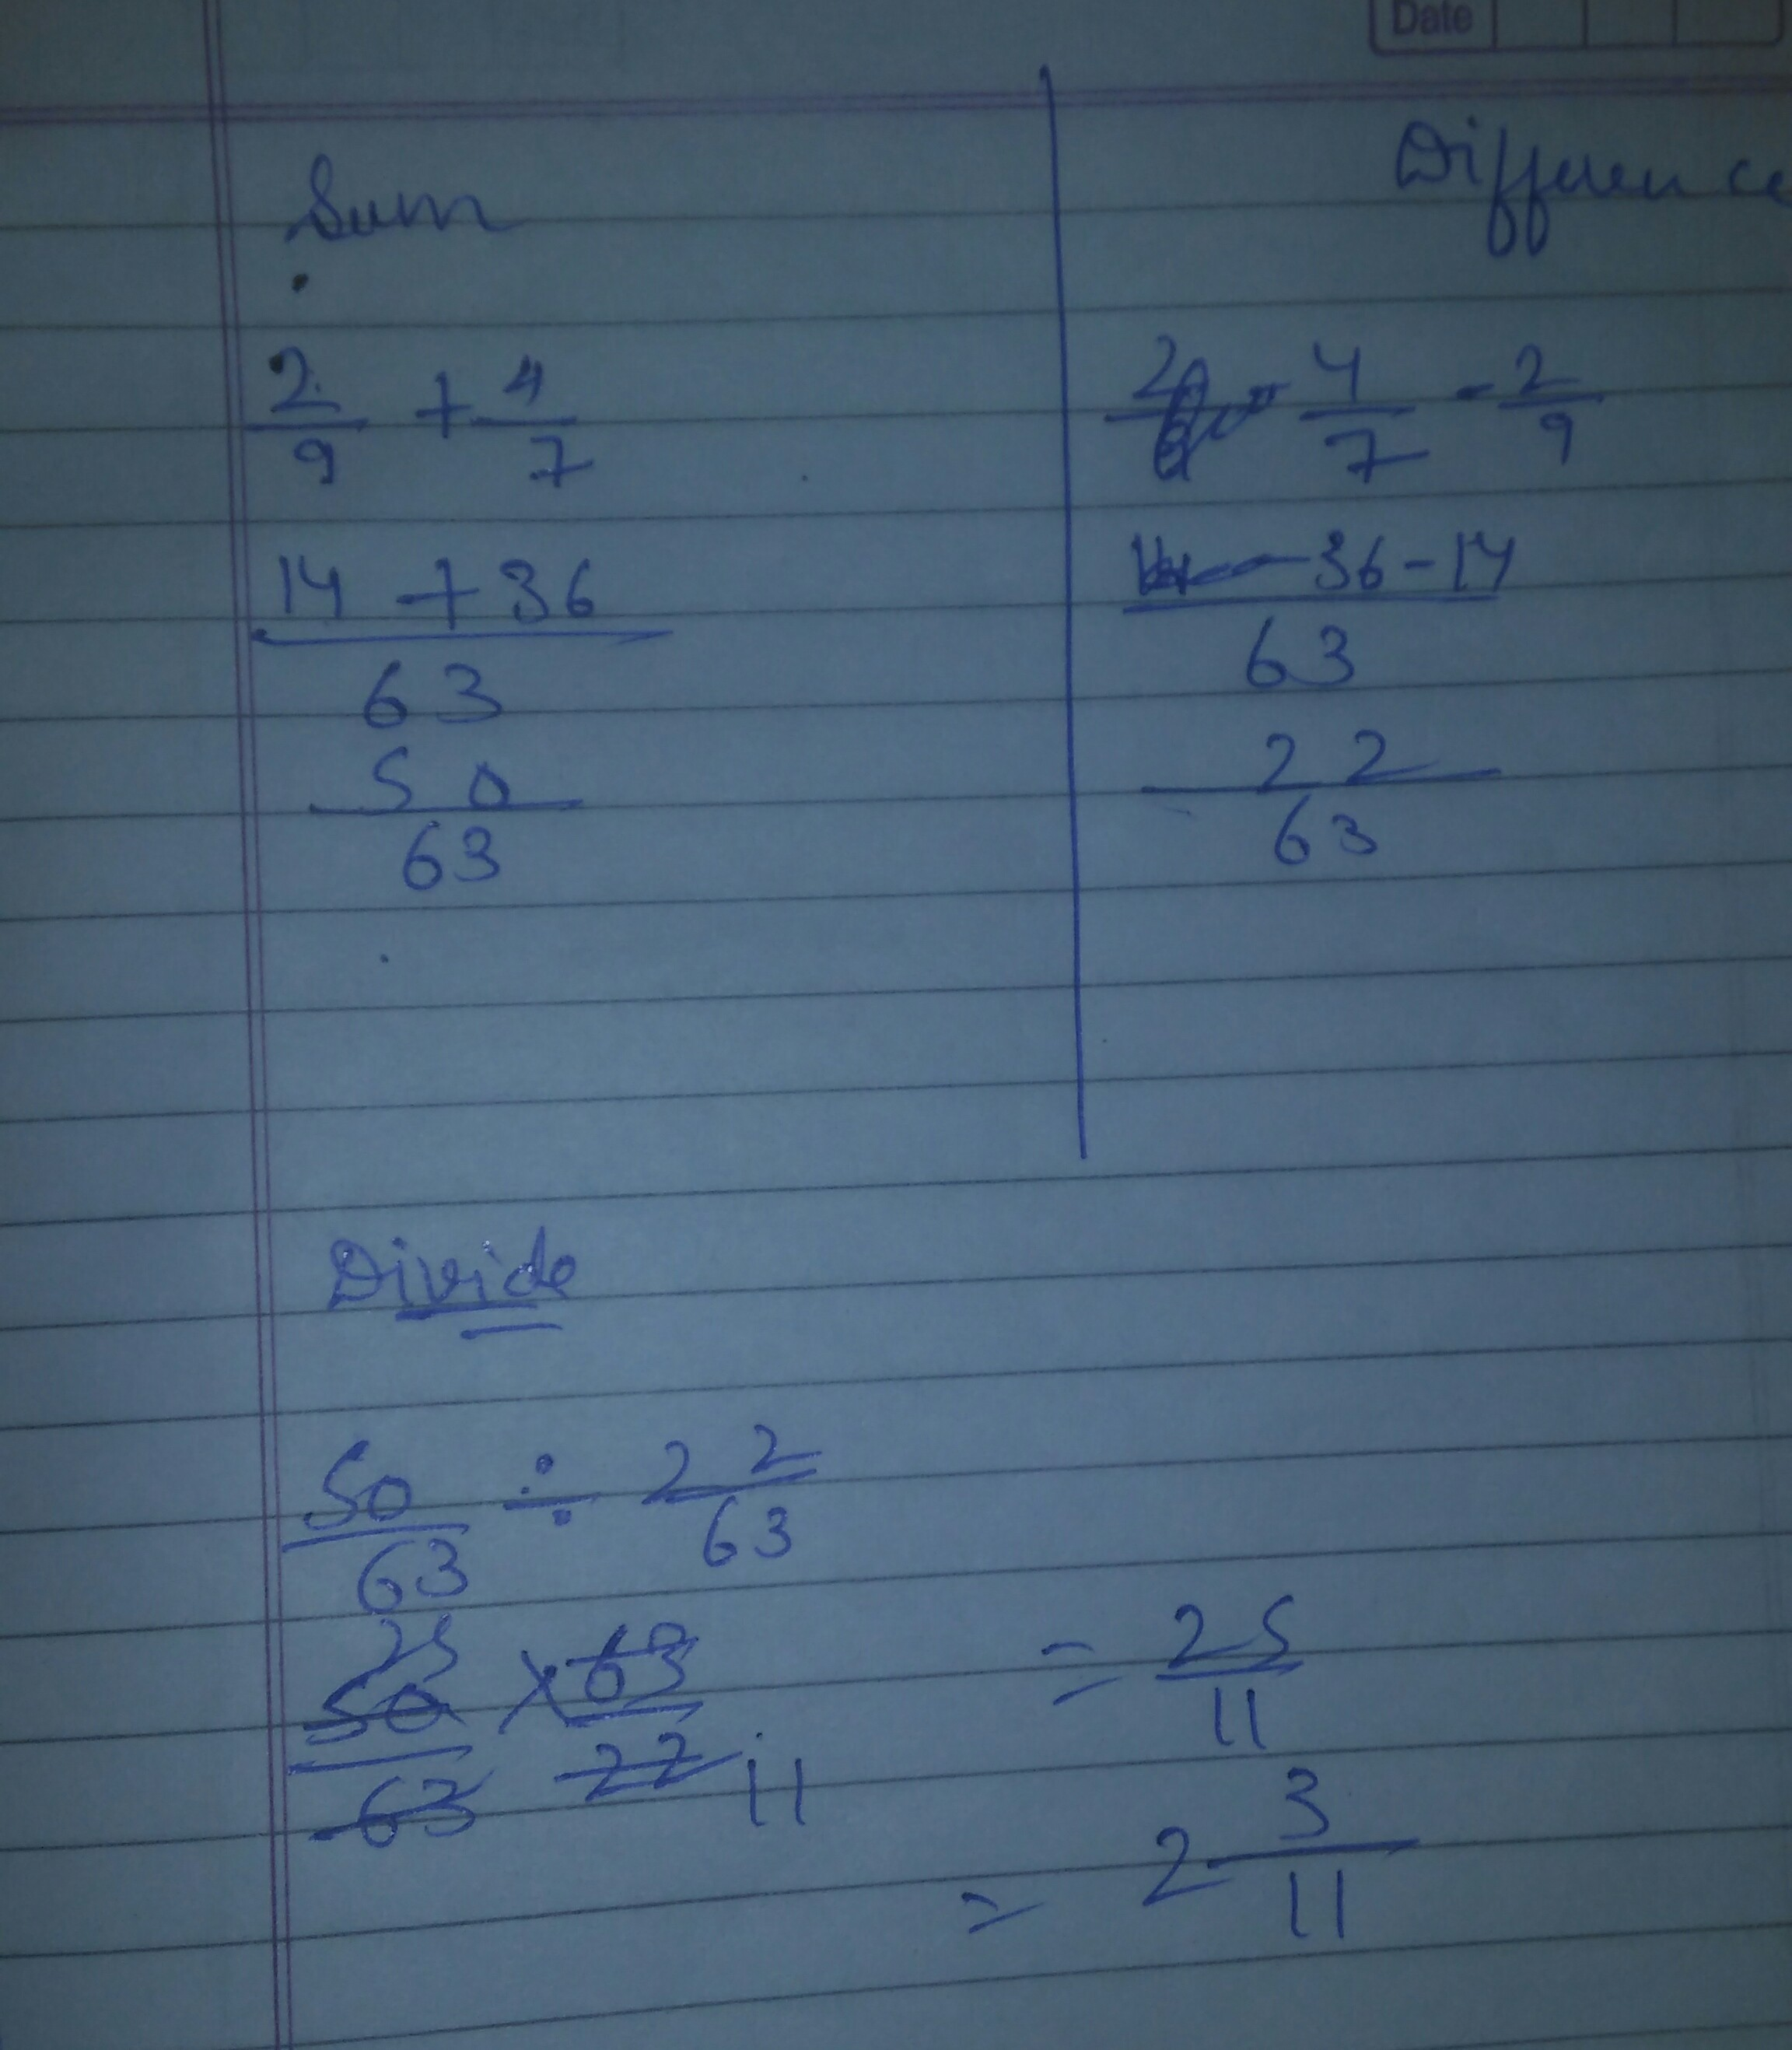 Divide the sum of 2/9 and 4/7 by their difference - Brainly.in